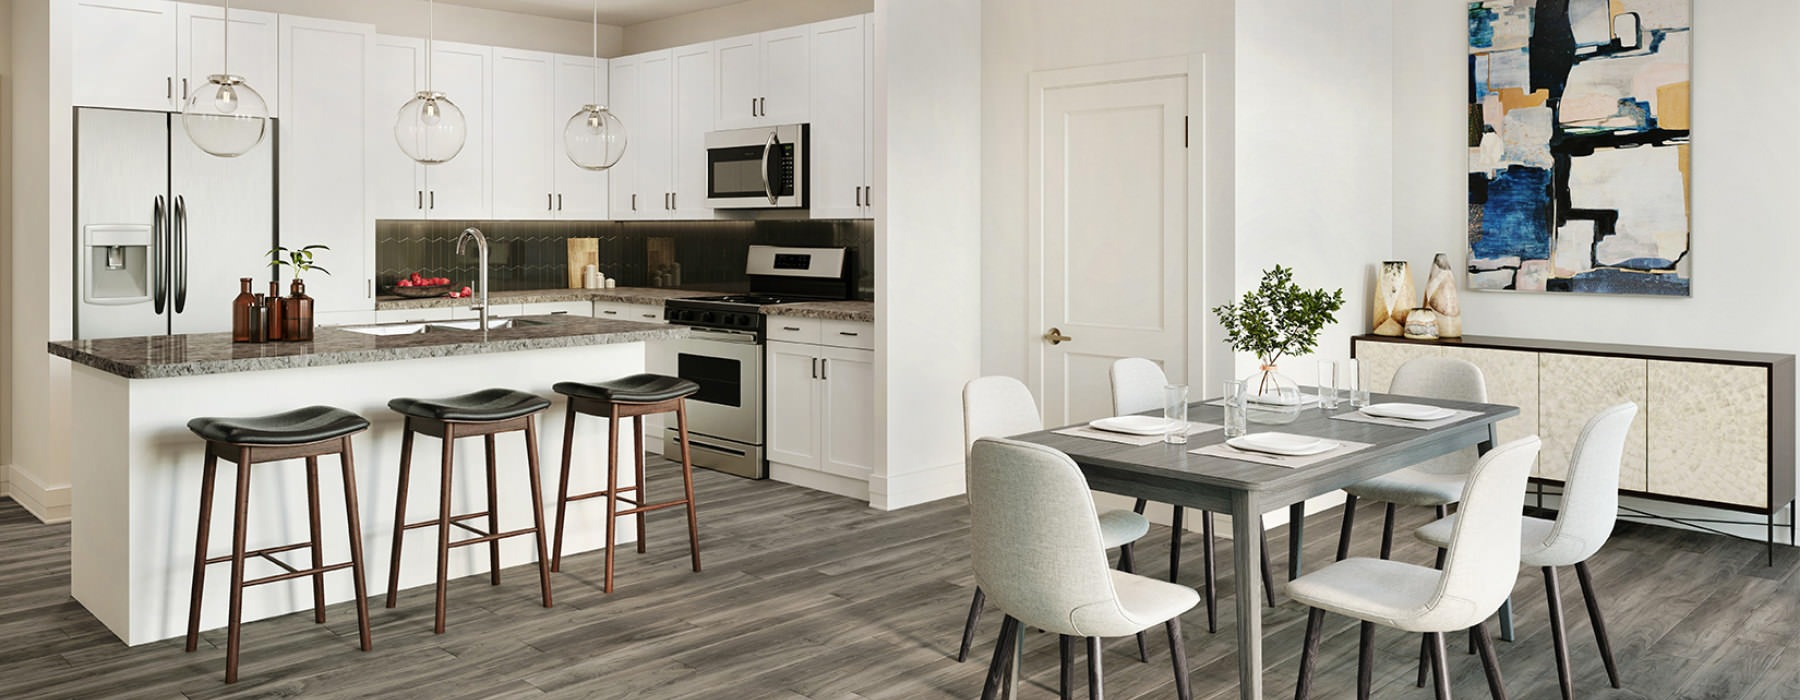 open concept kitchen and dining area with light colored finishes